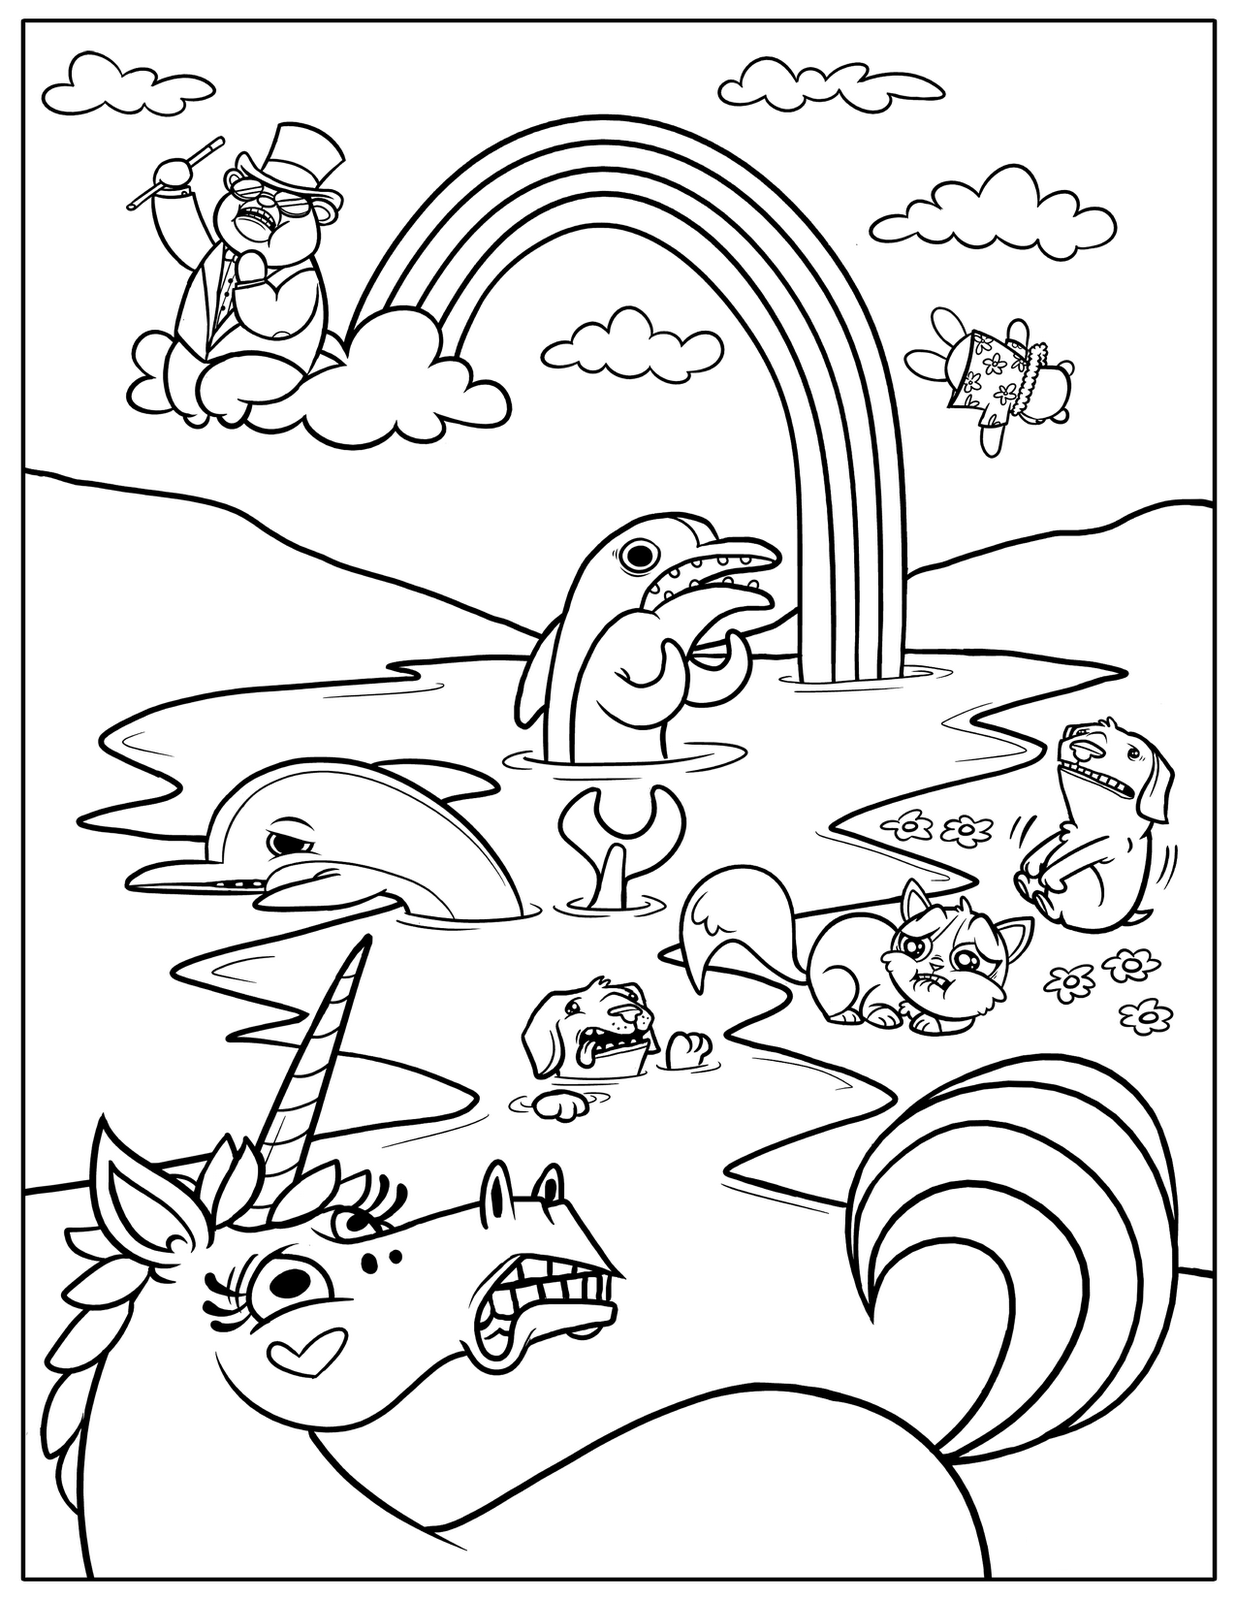 rainbow coloring pages kids printable - Printable Coloring Pages Kids